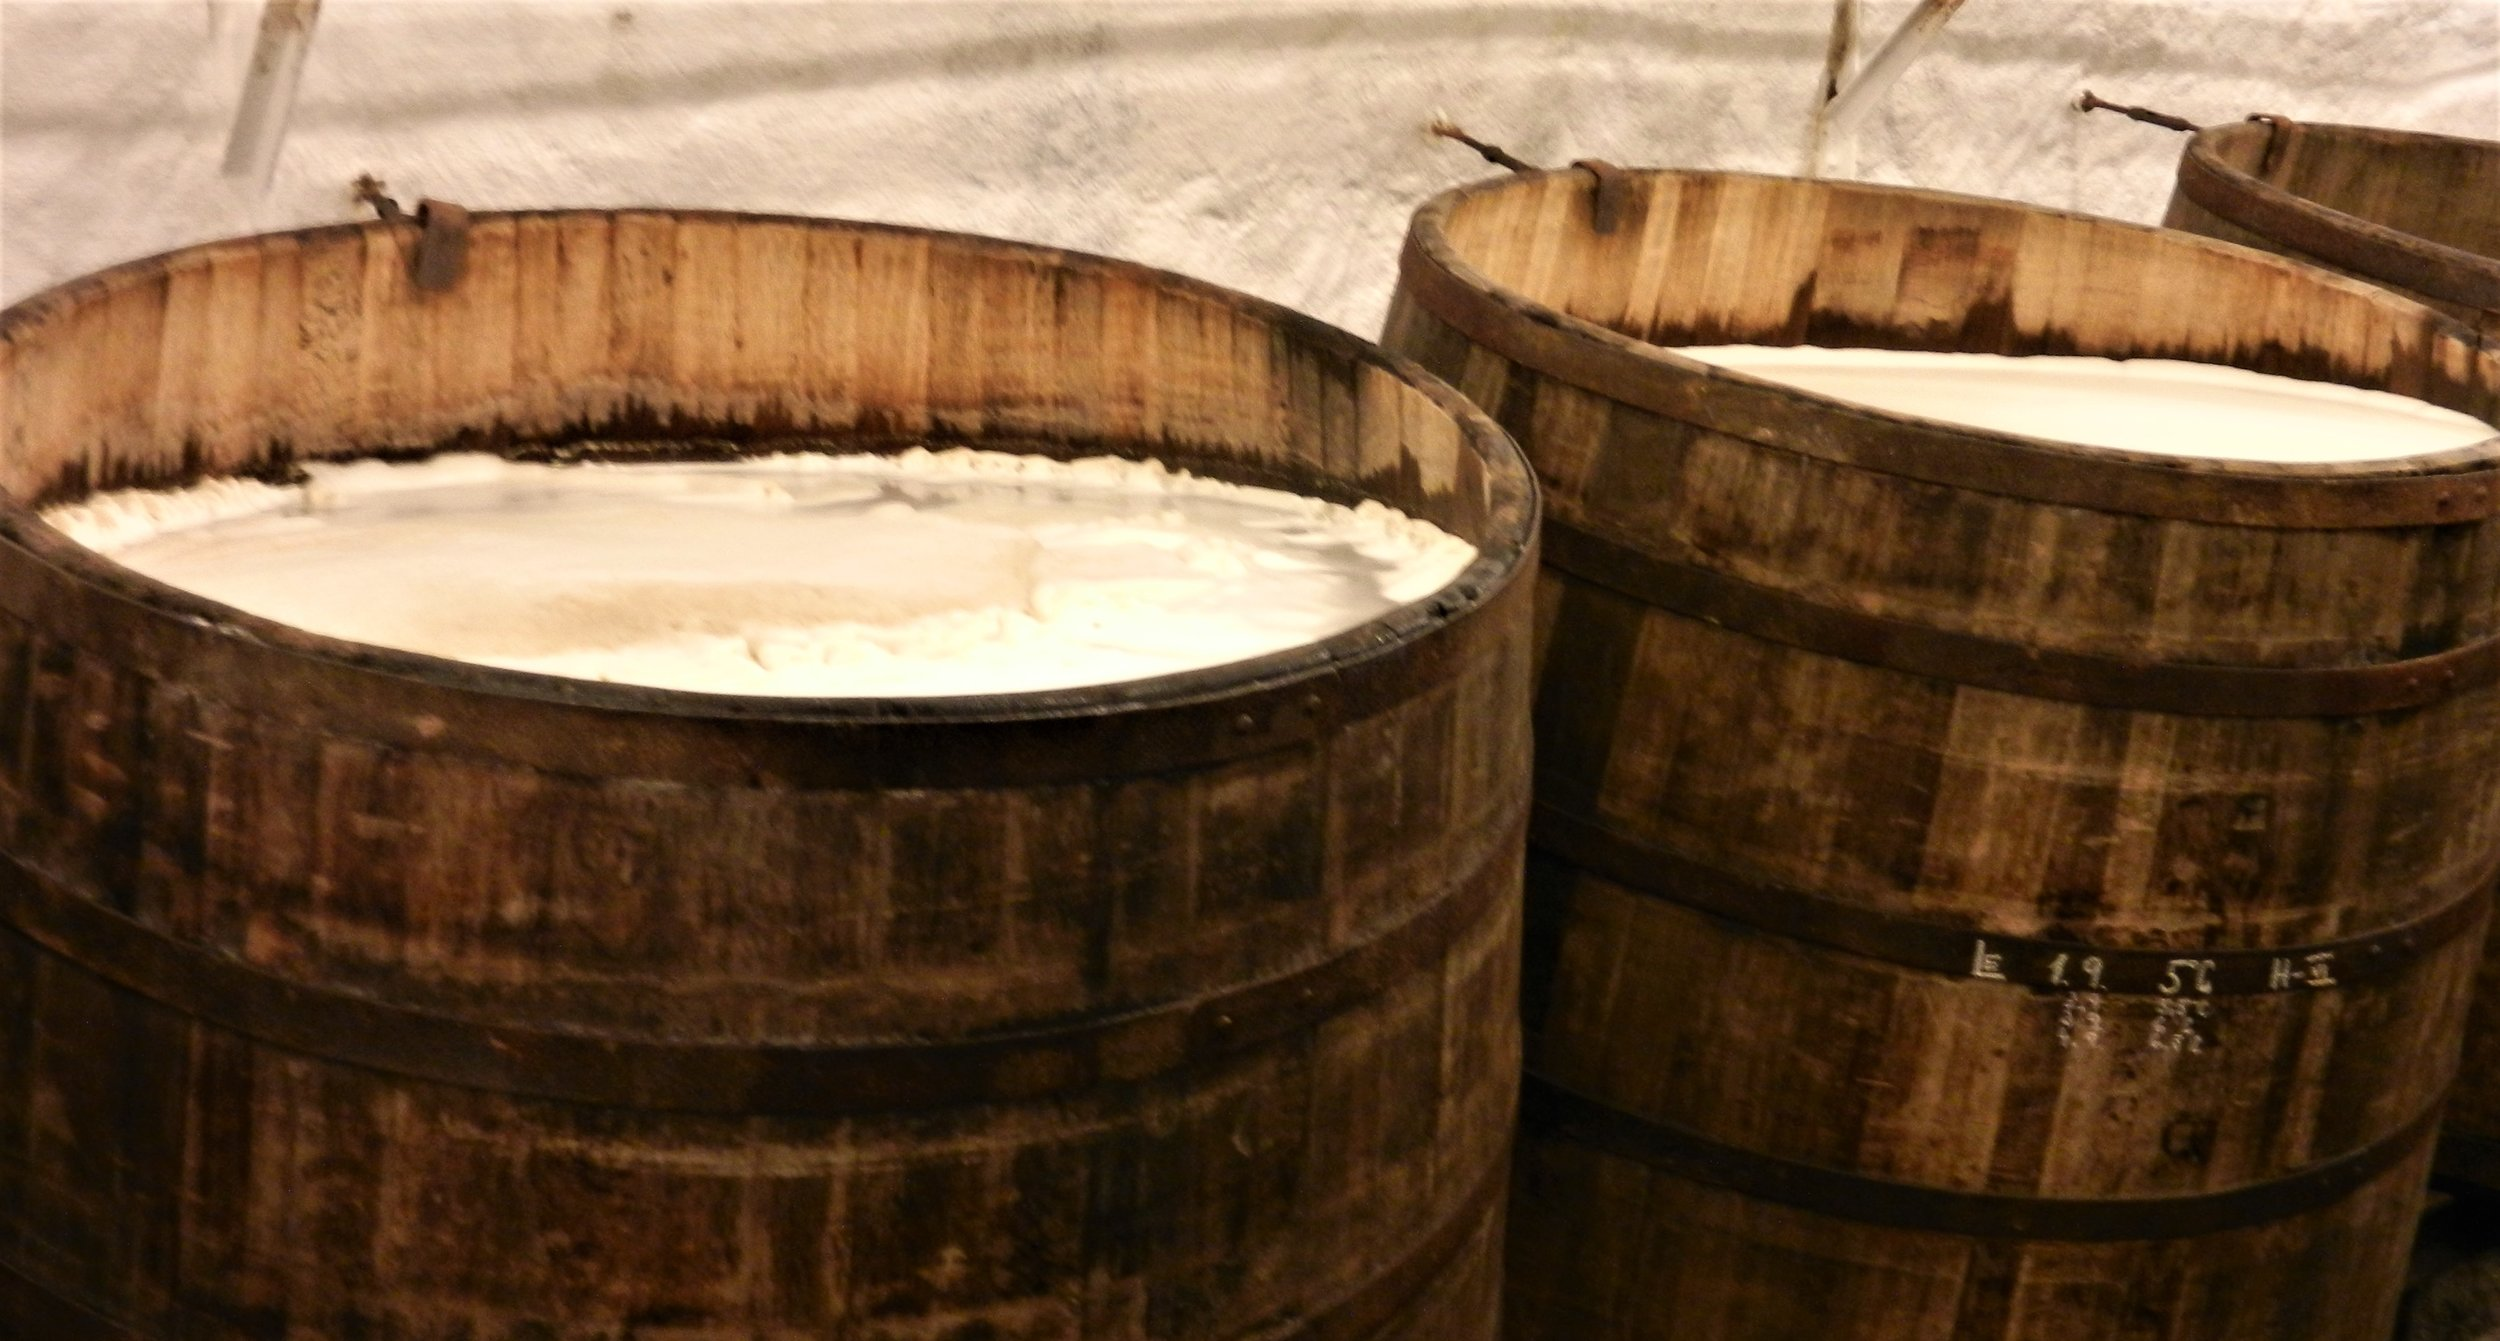 The brewery does still do open fermentation on wood--but just for visitors taking the brewery tour.